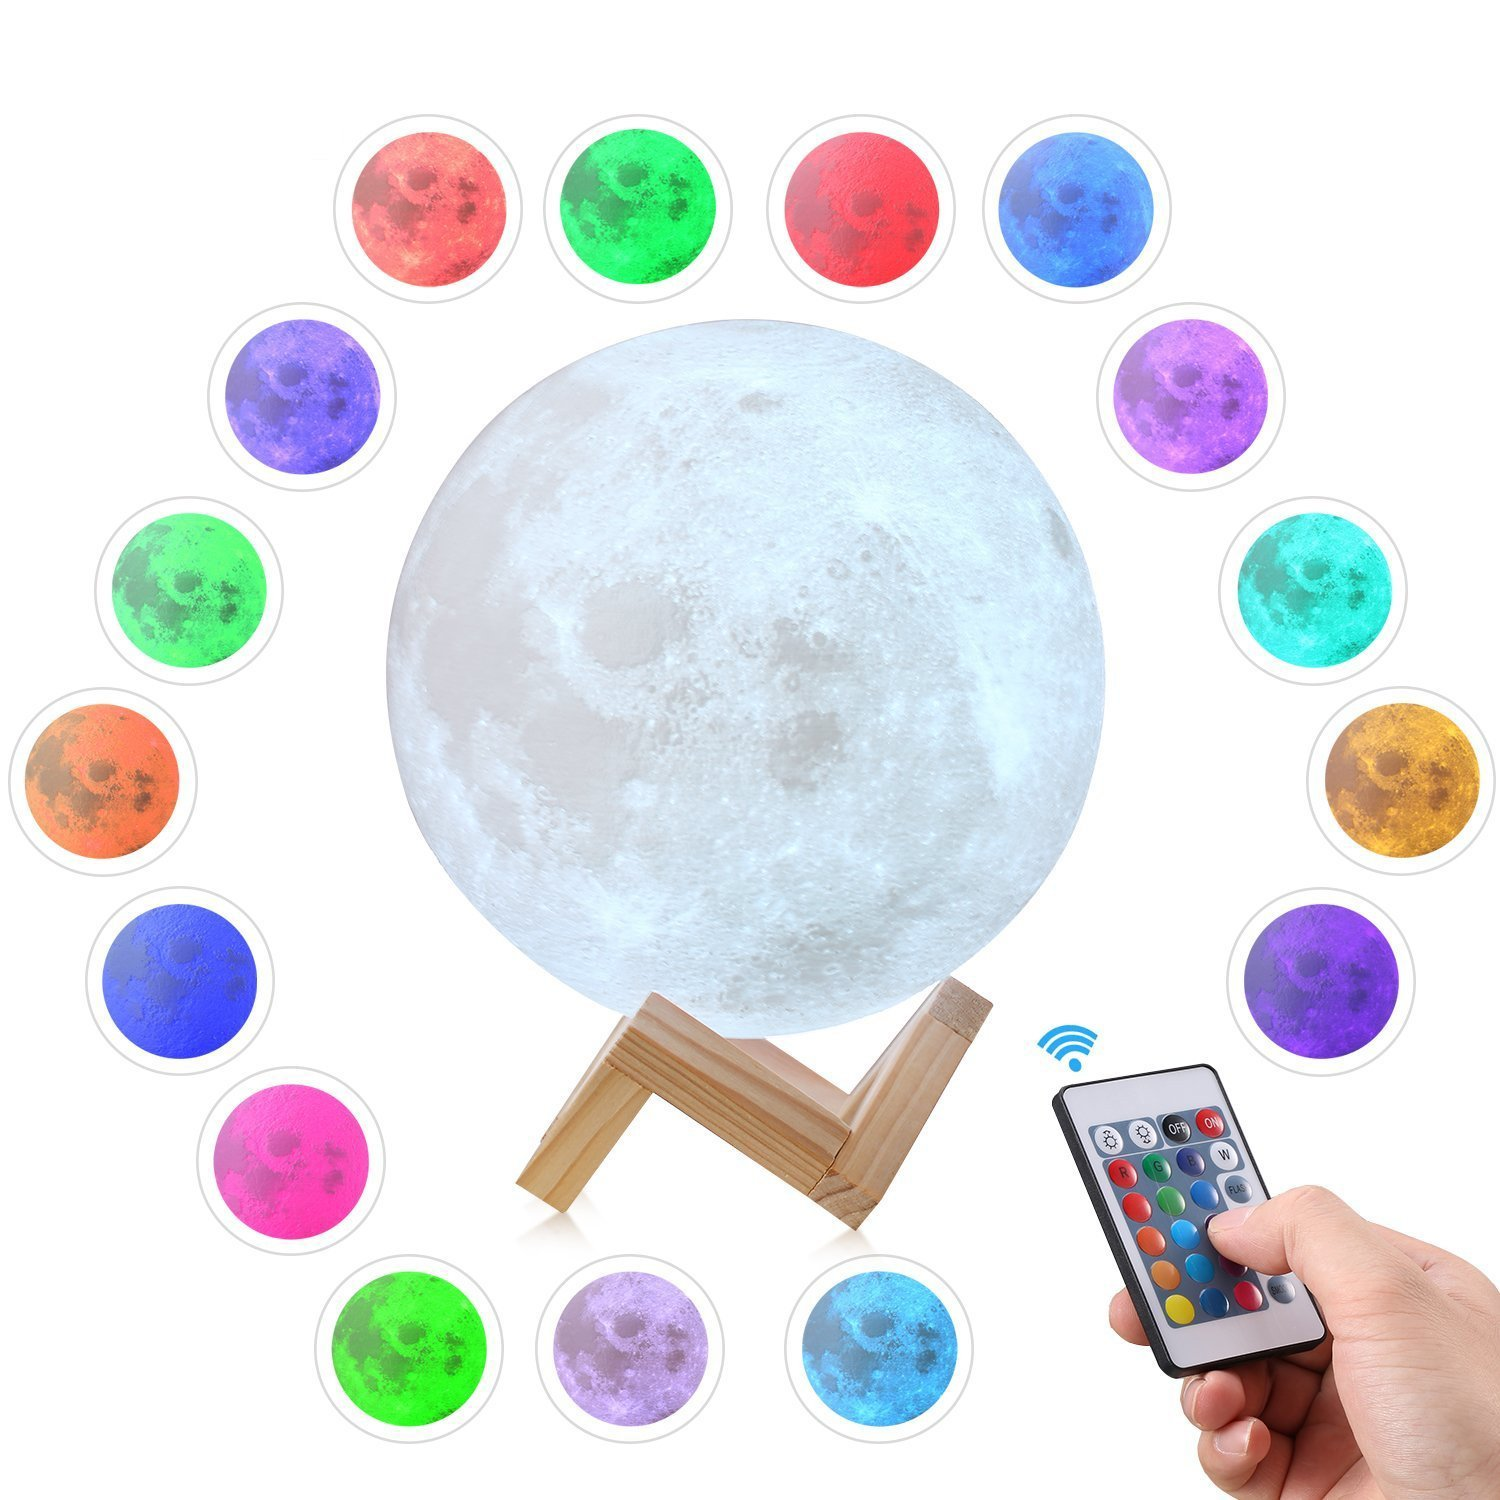 3D Printing LED Moon Lamp Lighting Night Light, Dimmable Remote Control 16 Colors RGB Touch Control Adjustable Brightness Rechargeable Moon Light with Wooden Base for Home Decorative 5.9 inch